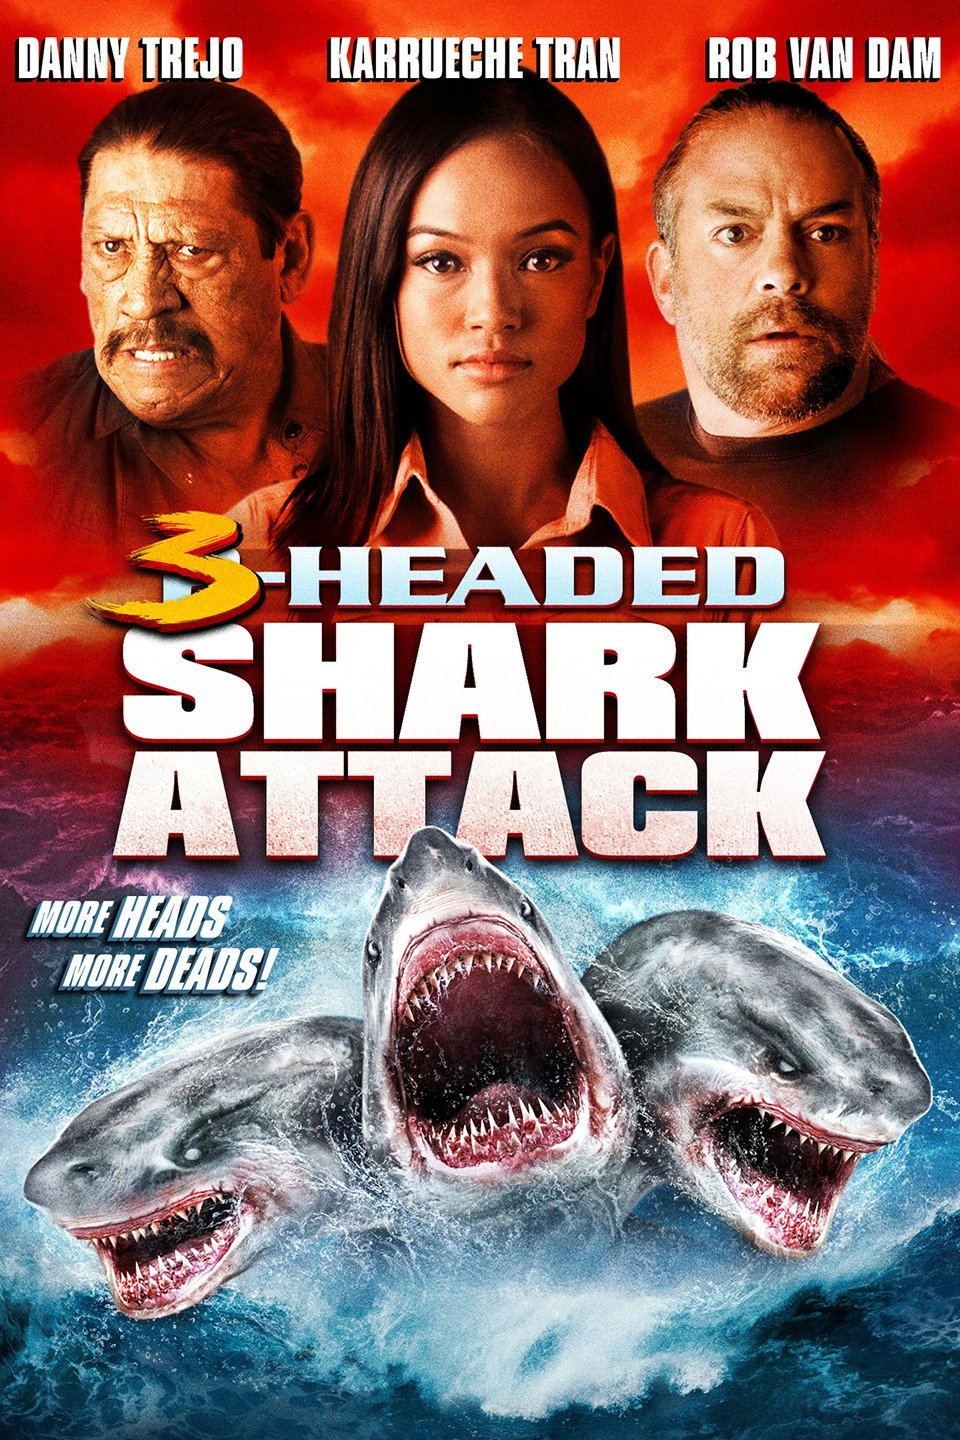 3-Headed Shark Attack-3-Headed Shark Attack